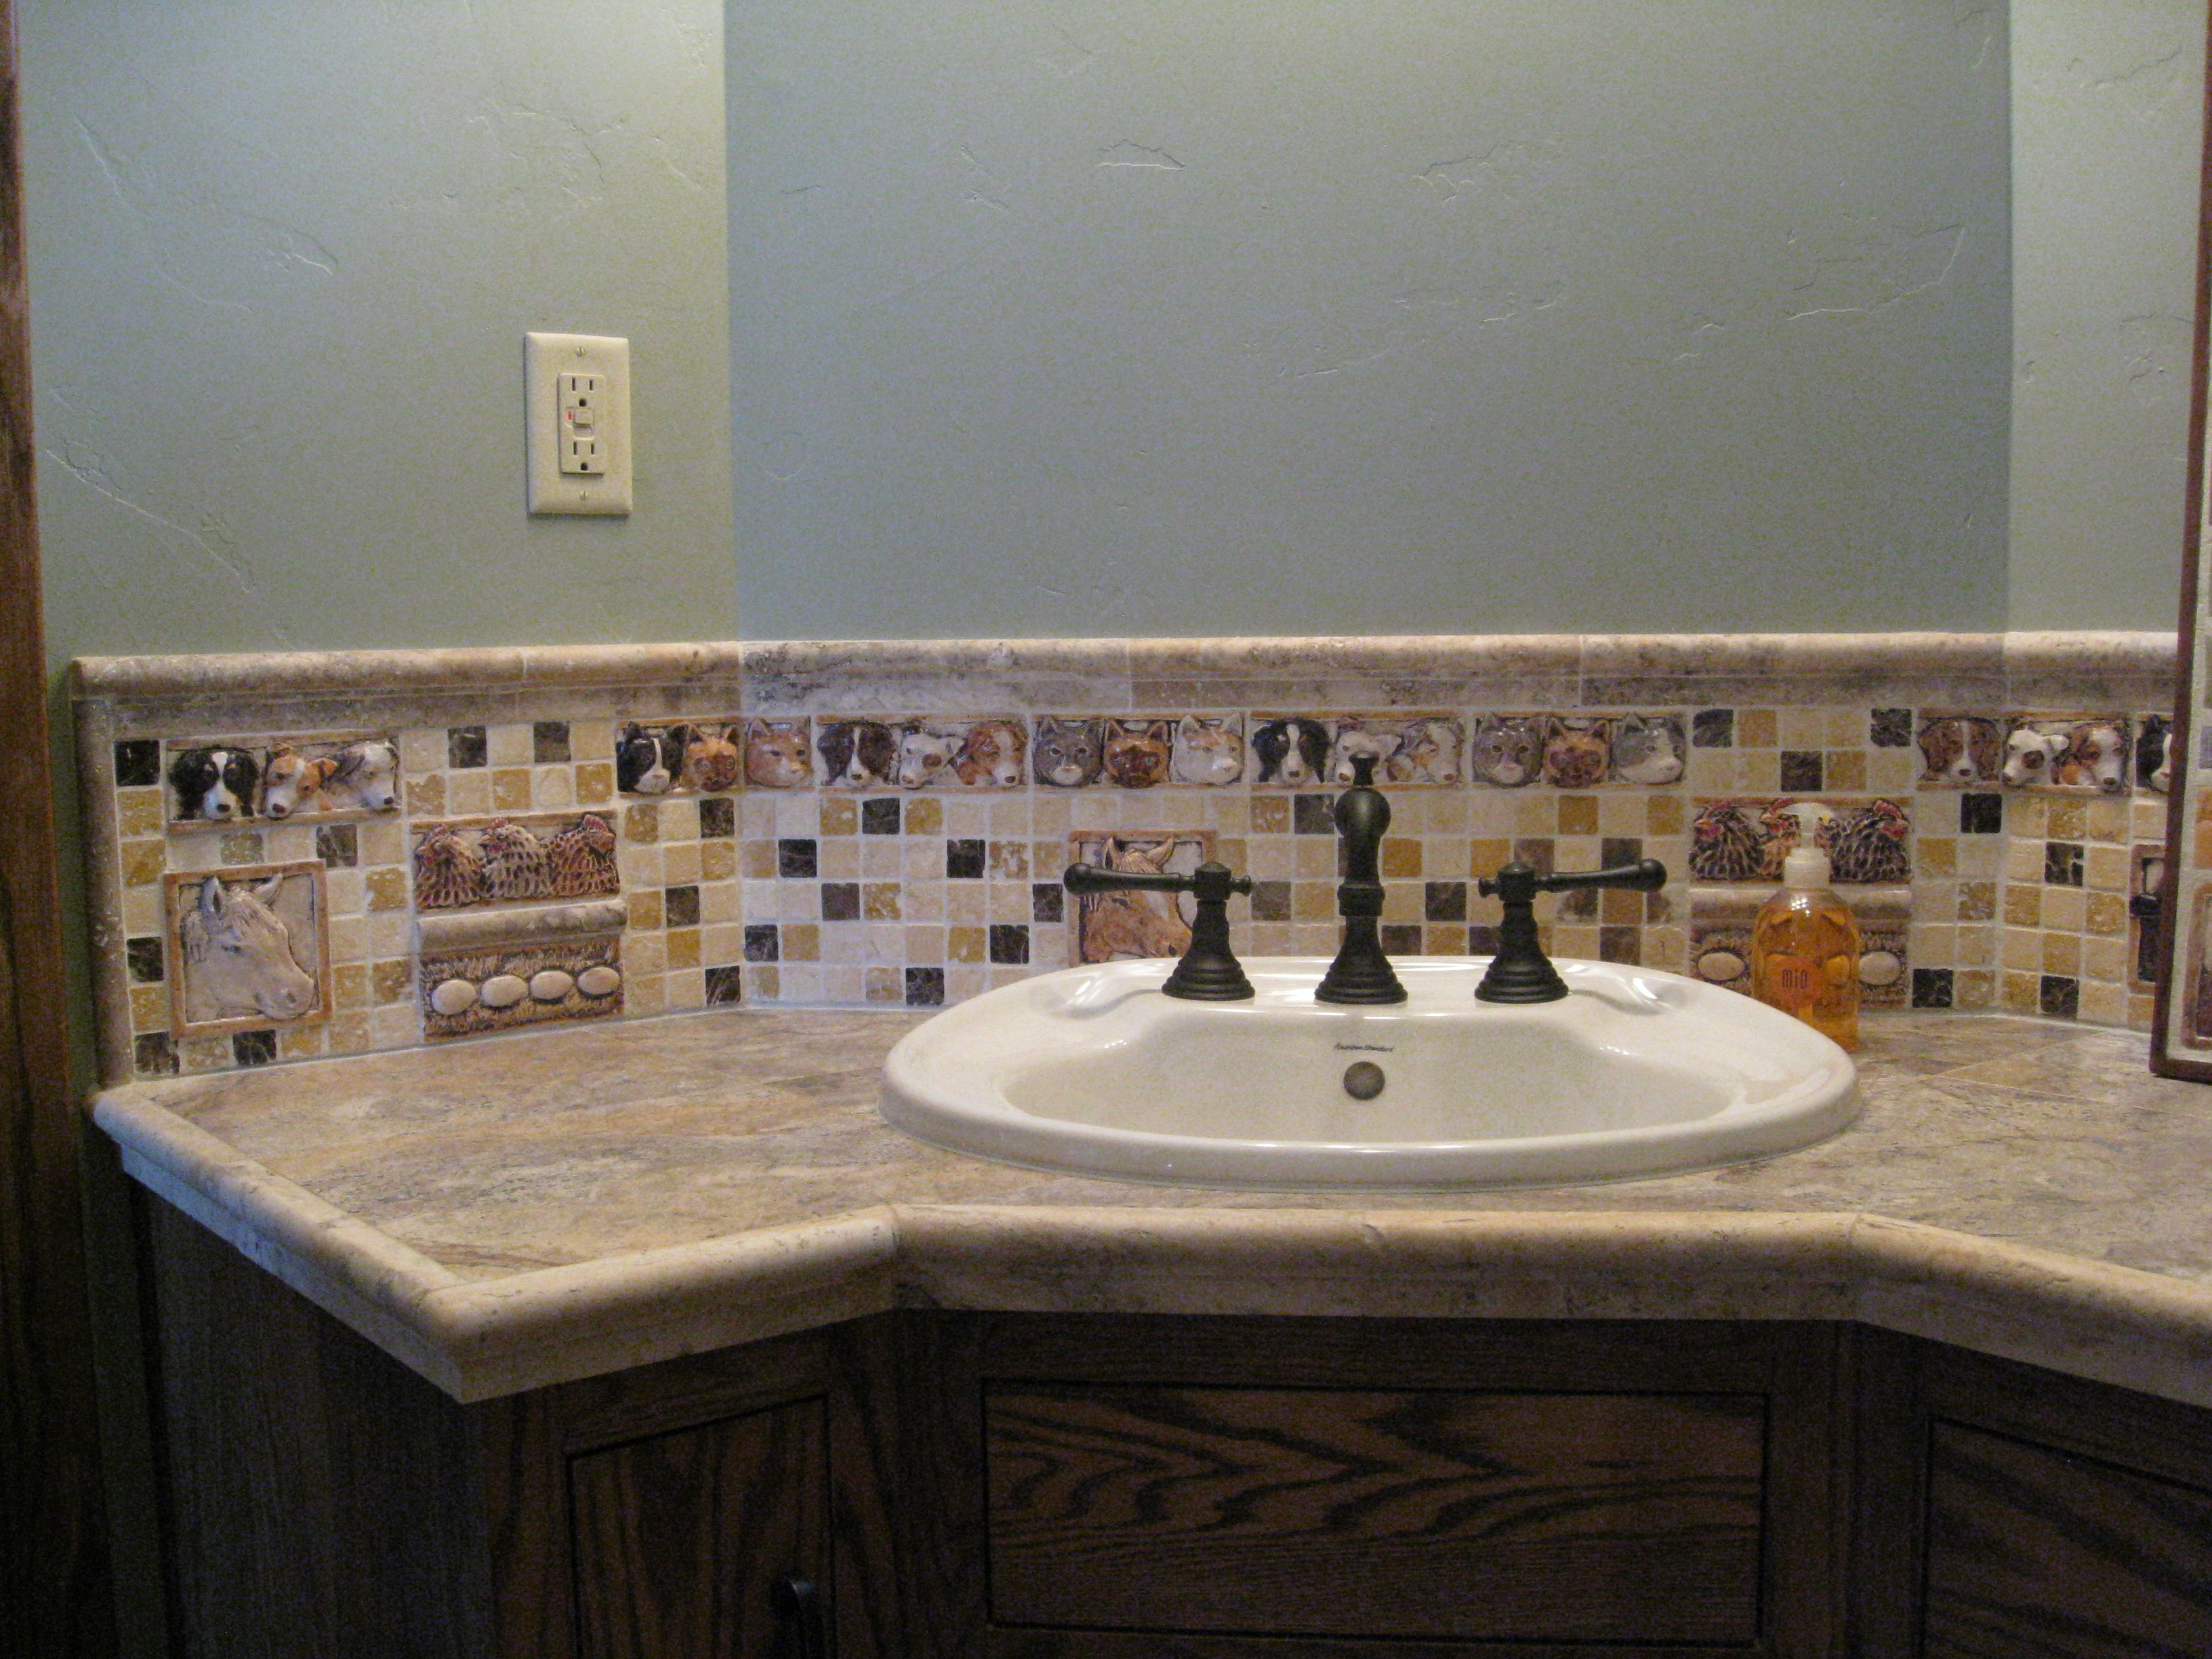 Bathroom sink backsplash ideas - Bathroom Sink Backsplash With Decorative Handmade Barnyard Animals Cat Dogs Tiles